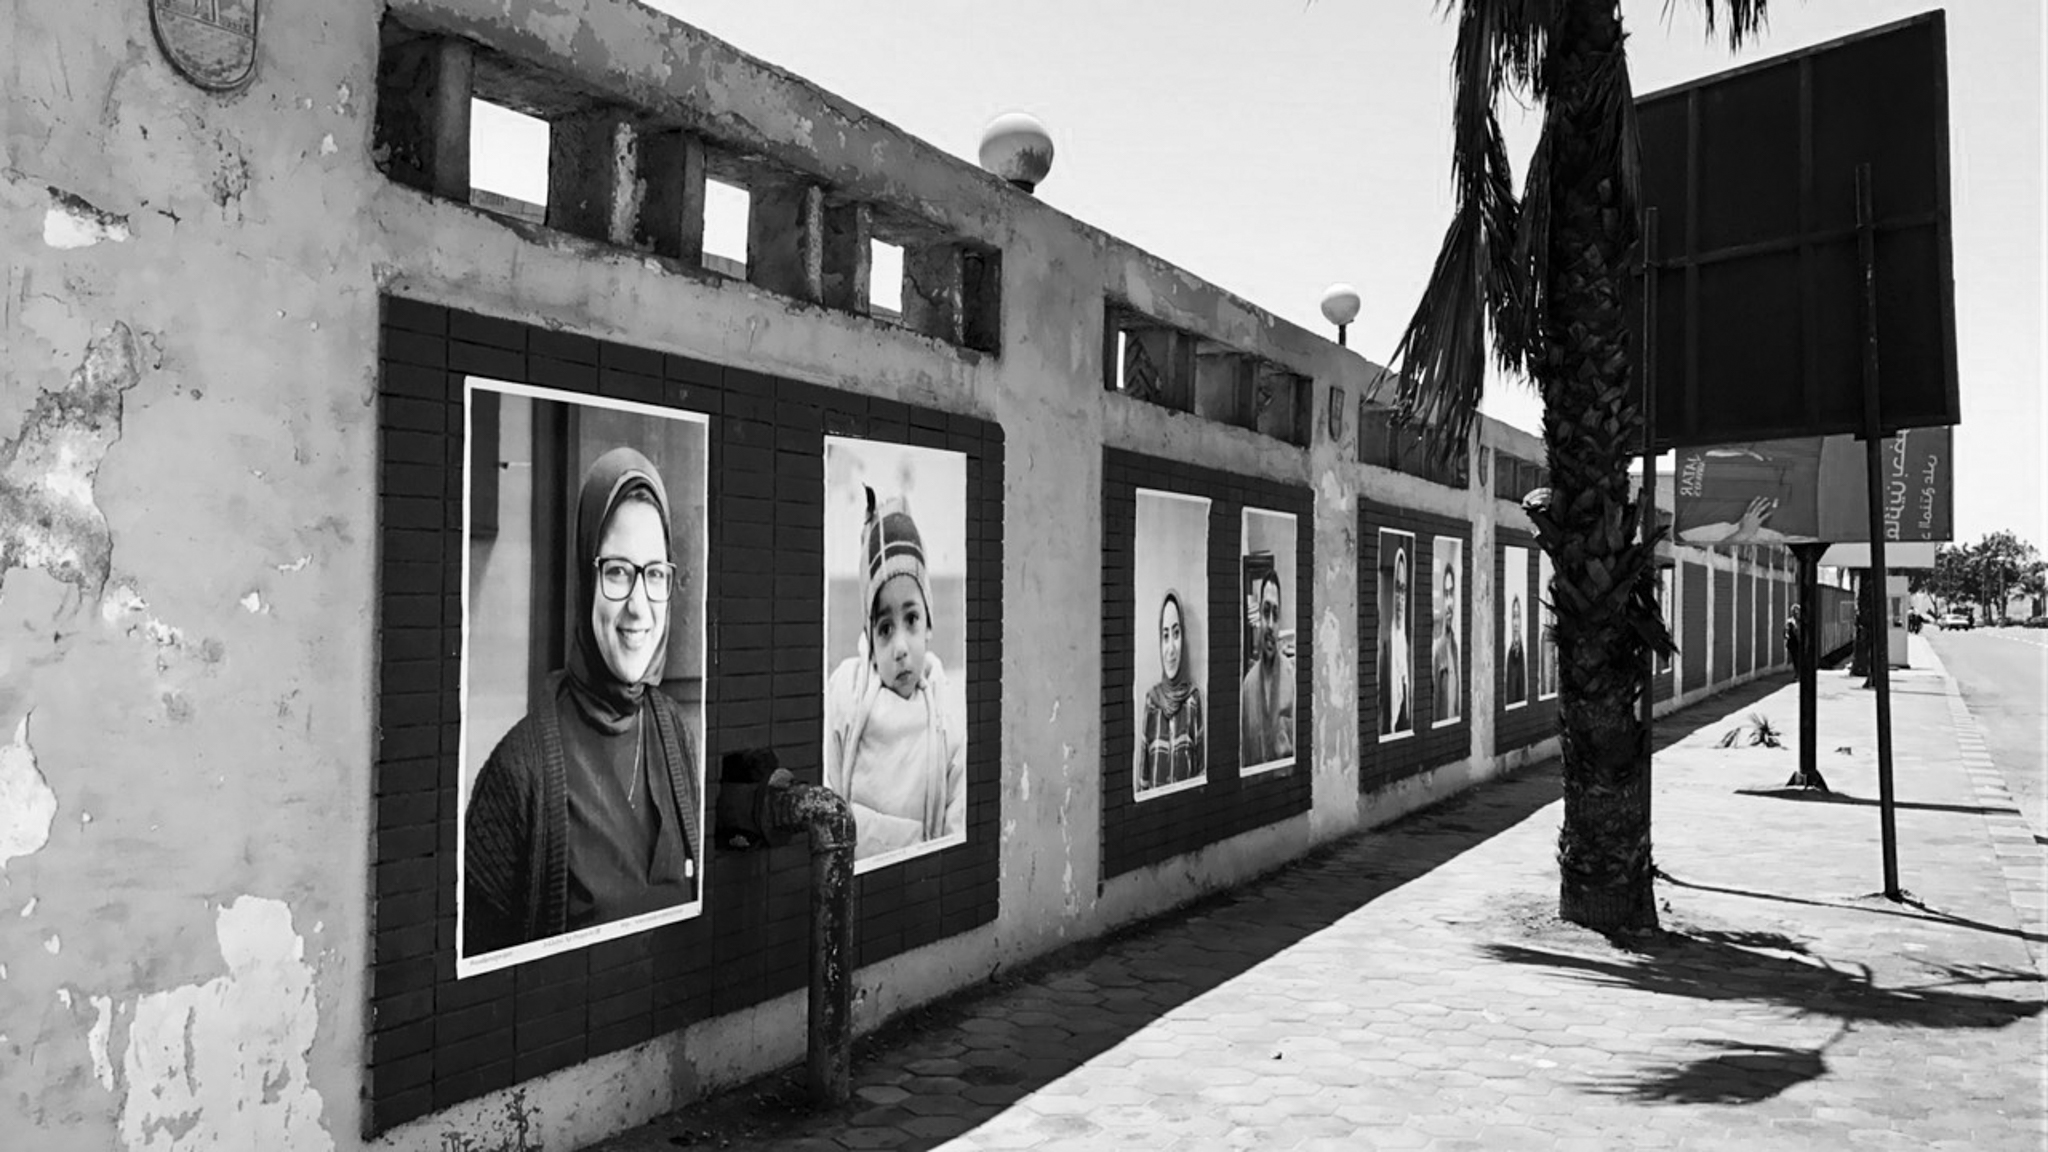 Each portrait carrying a timeline behind it and reflecting the community of the Hospital...